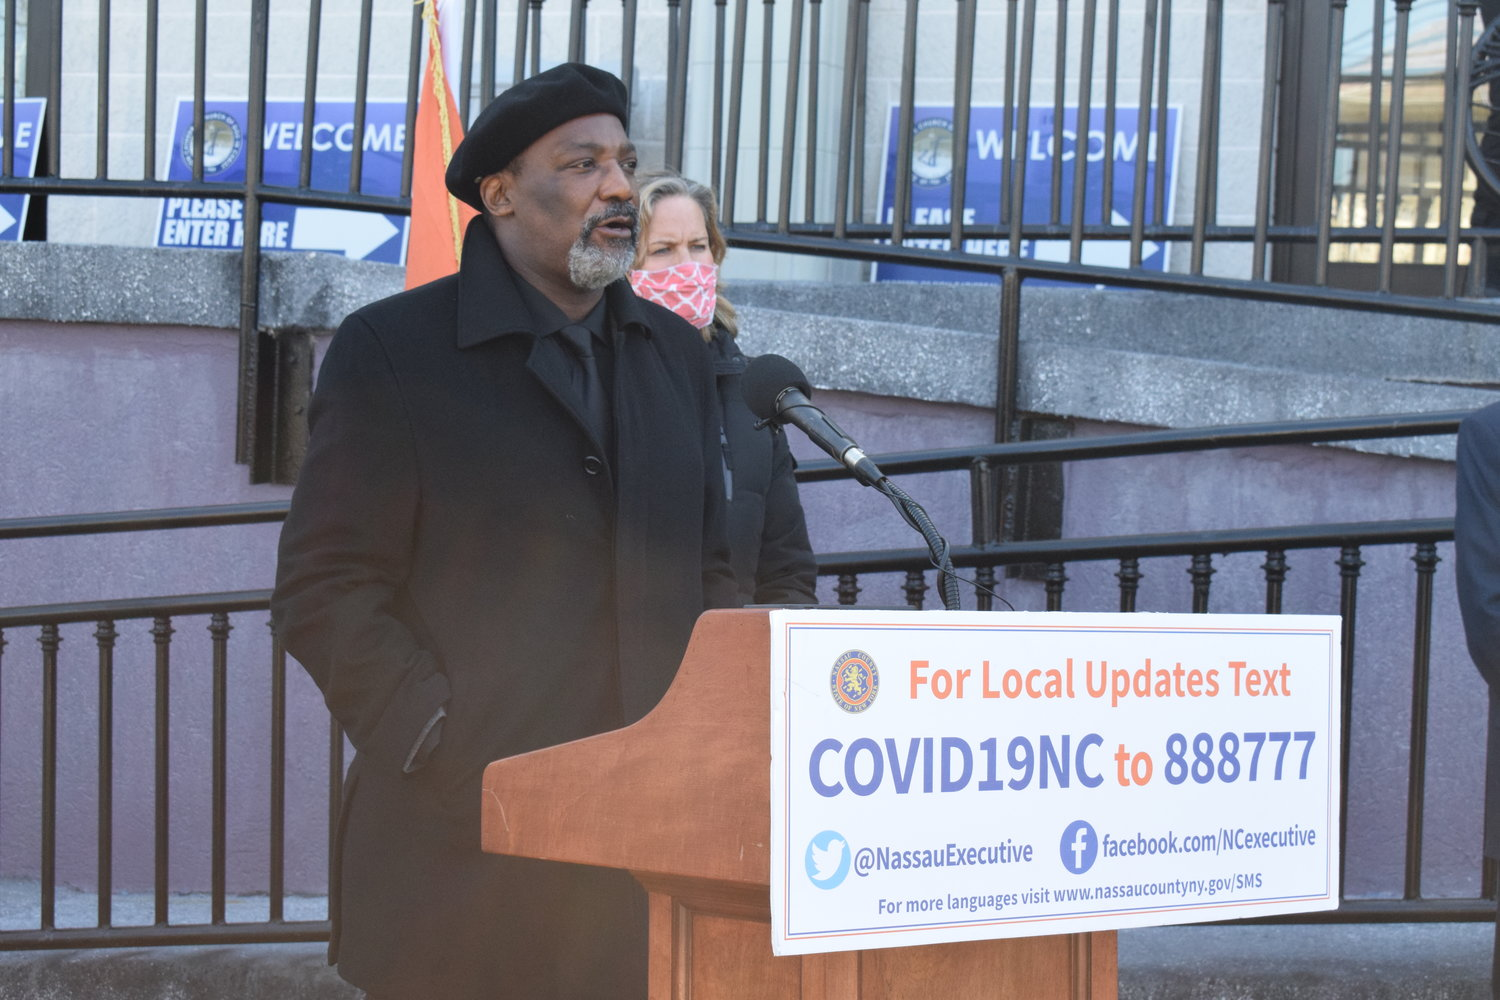 The Bishop Frank A. White spoke about the importance of community leaders joining together to help the most vulnerable residents get vaccinated against Covid-19.